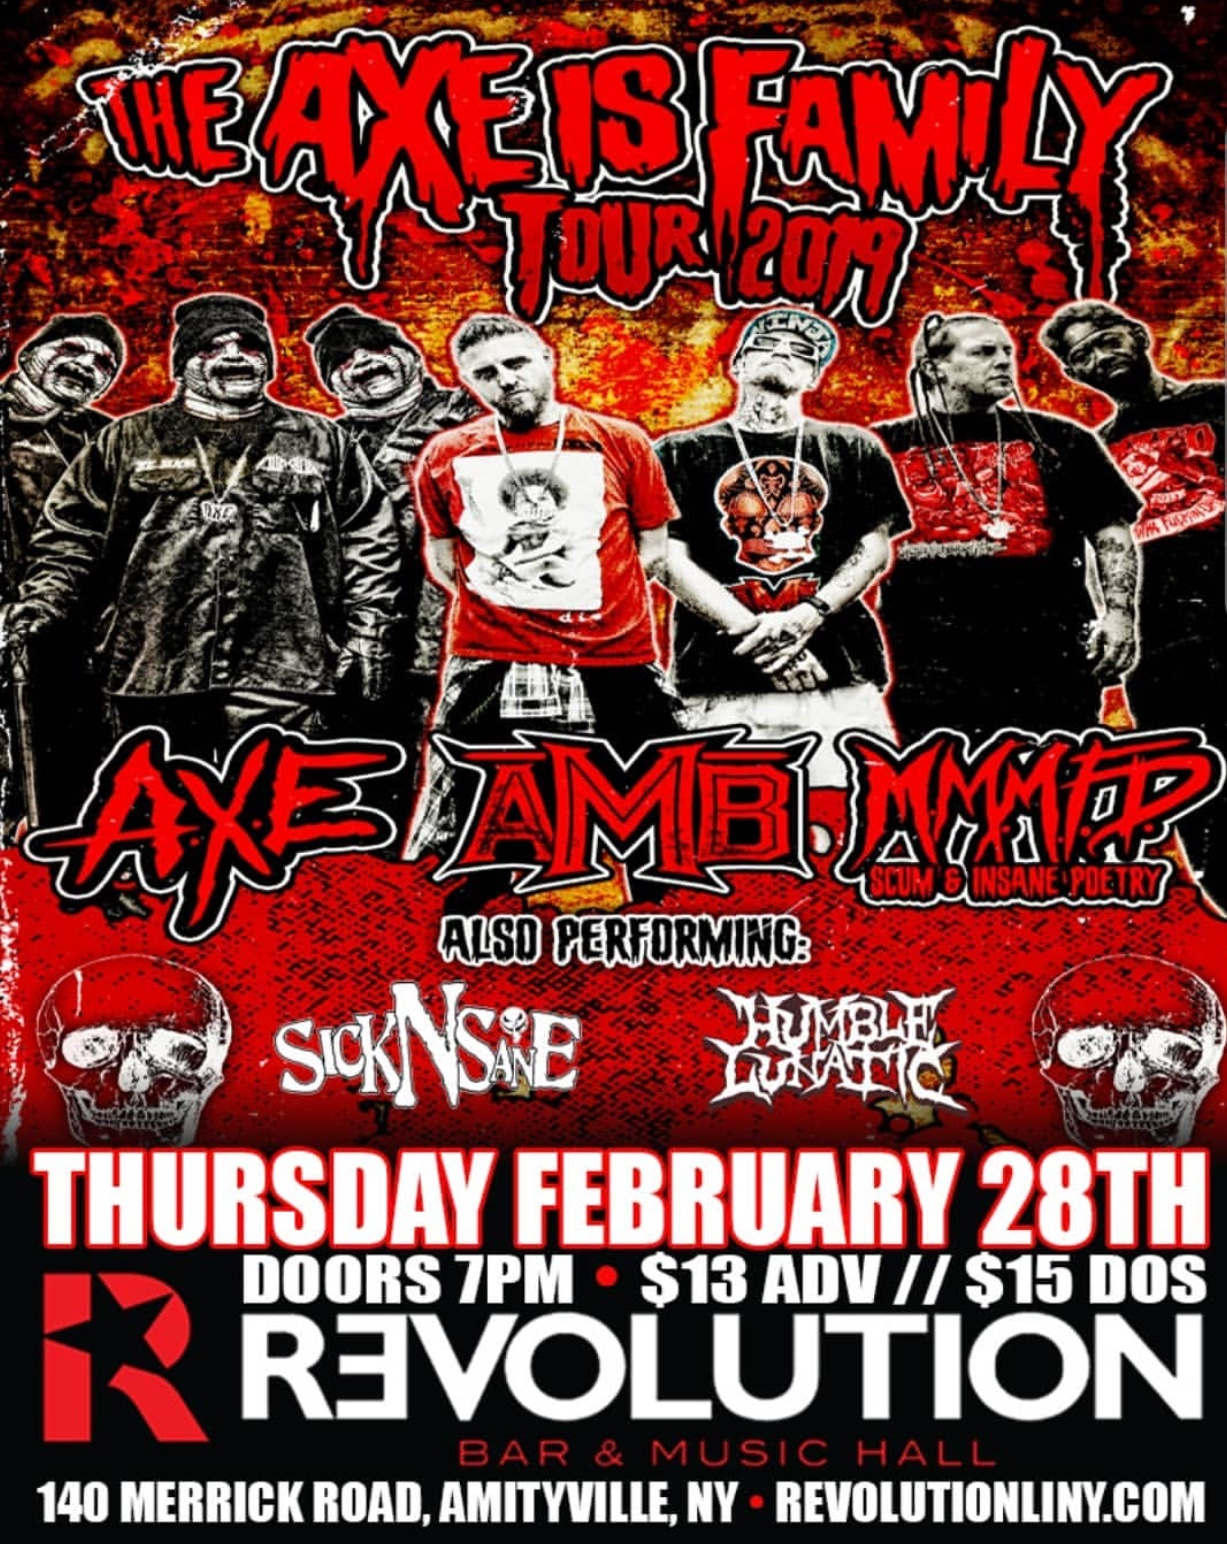 The AXE is family tour is hitting Amityville. I'll be ripping the stage on this stop. Click the picture for tickets.